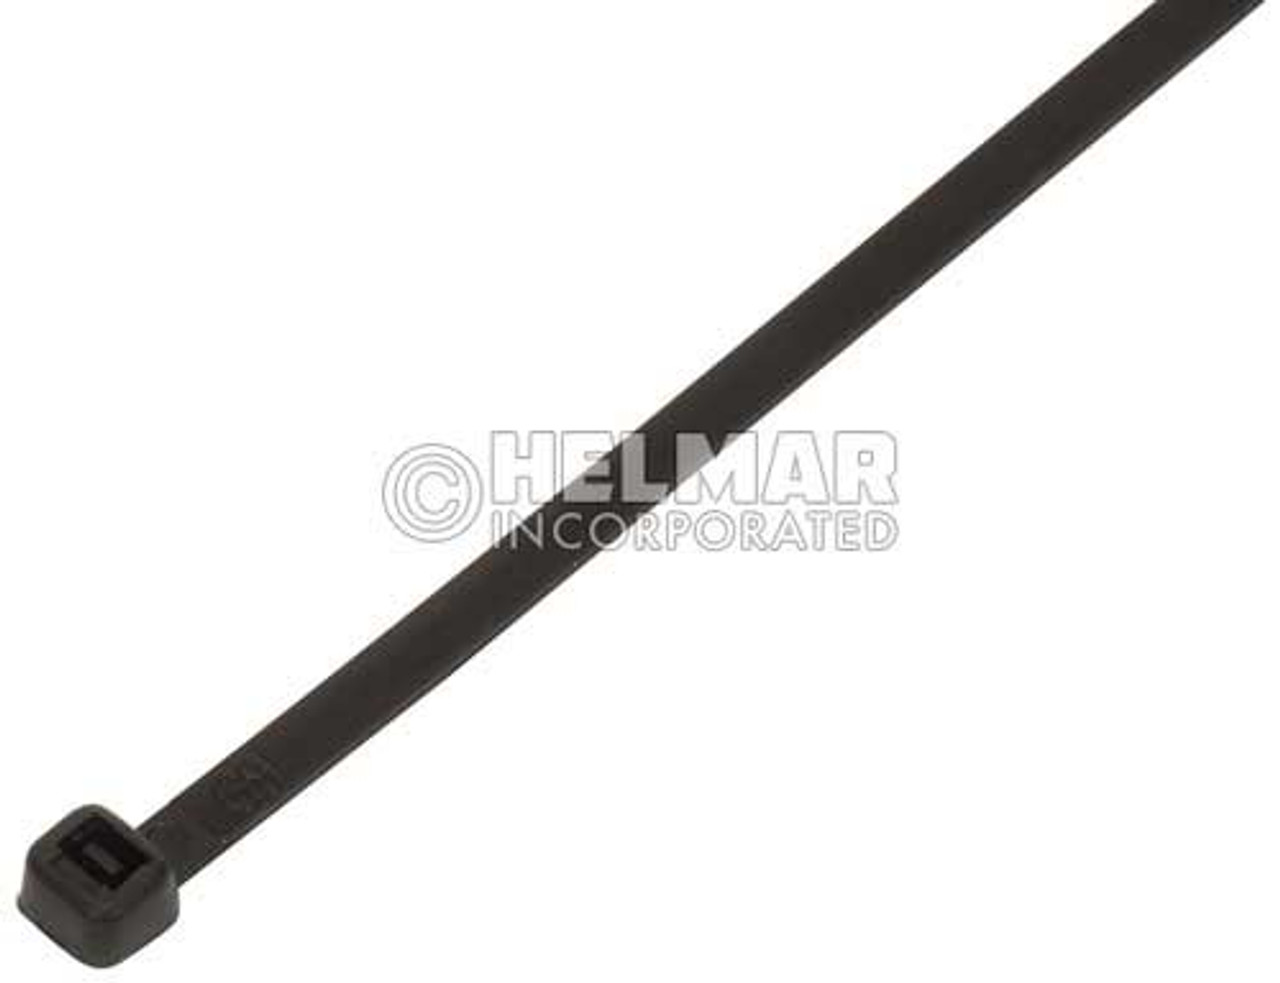 """05726 Cable Tie 11"""" Length, Black"""